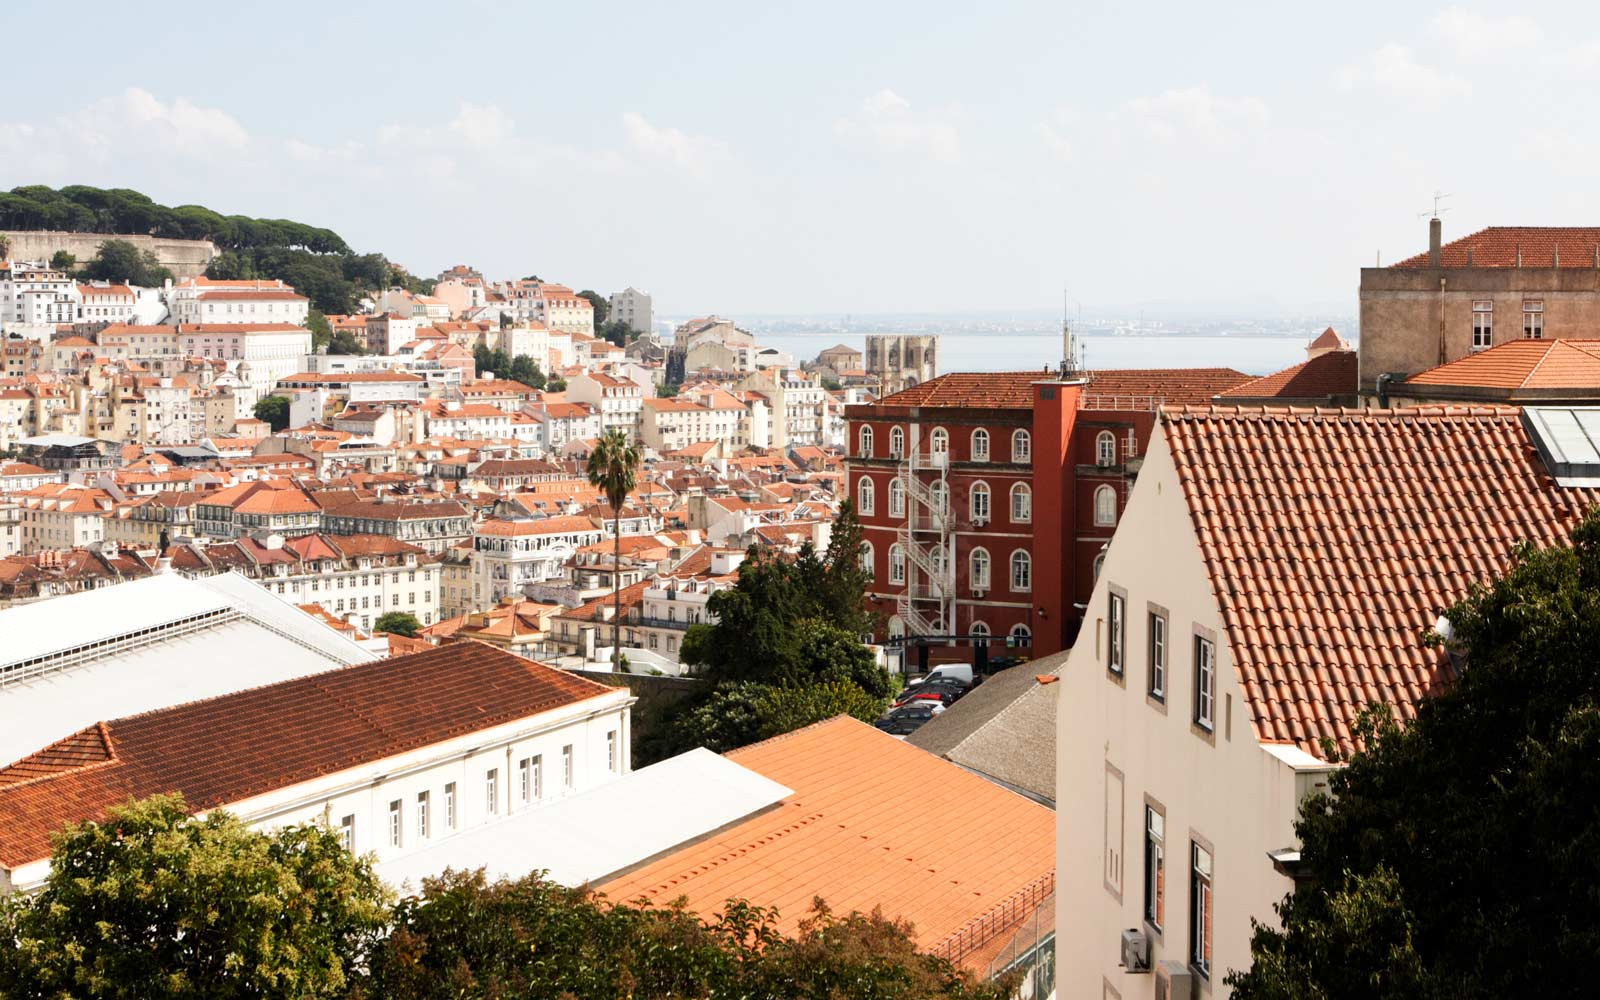 Portugal: Travel + Leisure's 2016 Destination of the Year